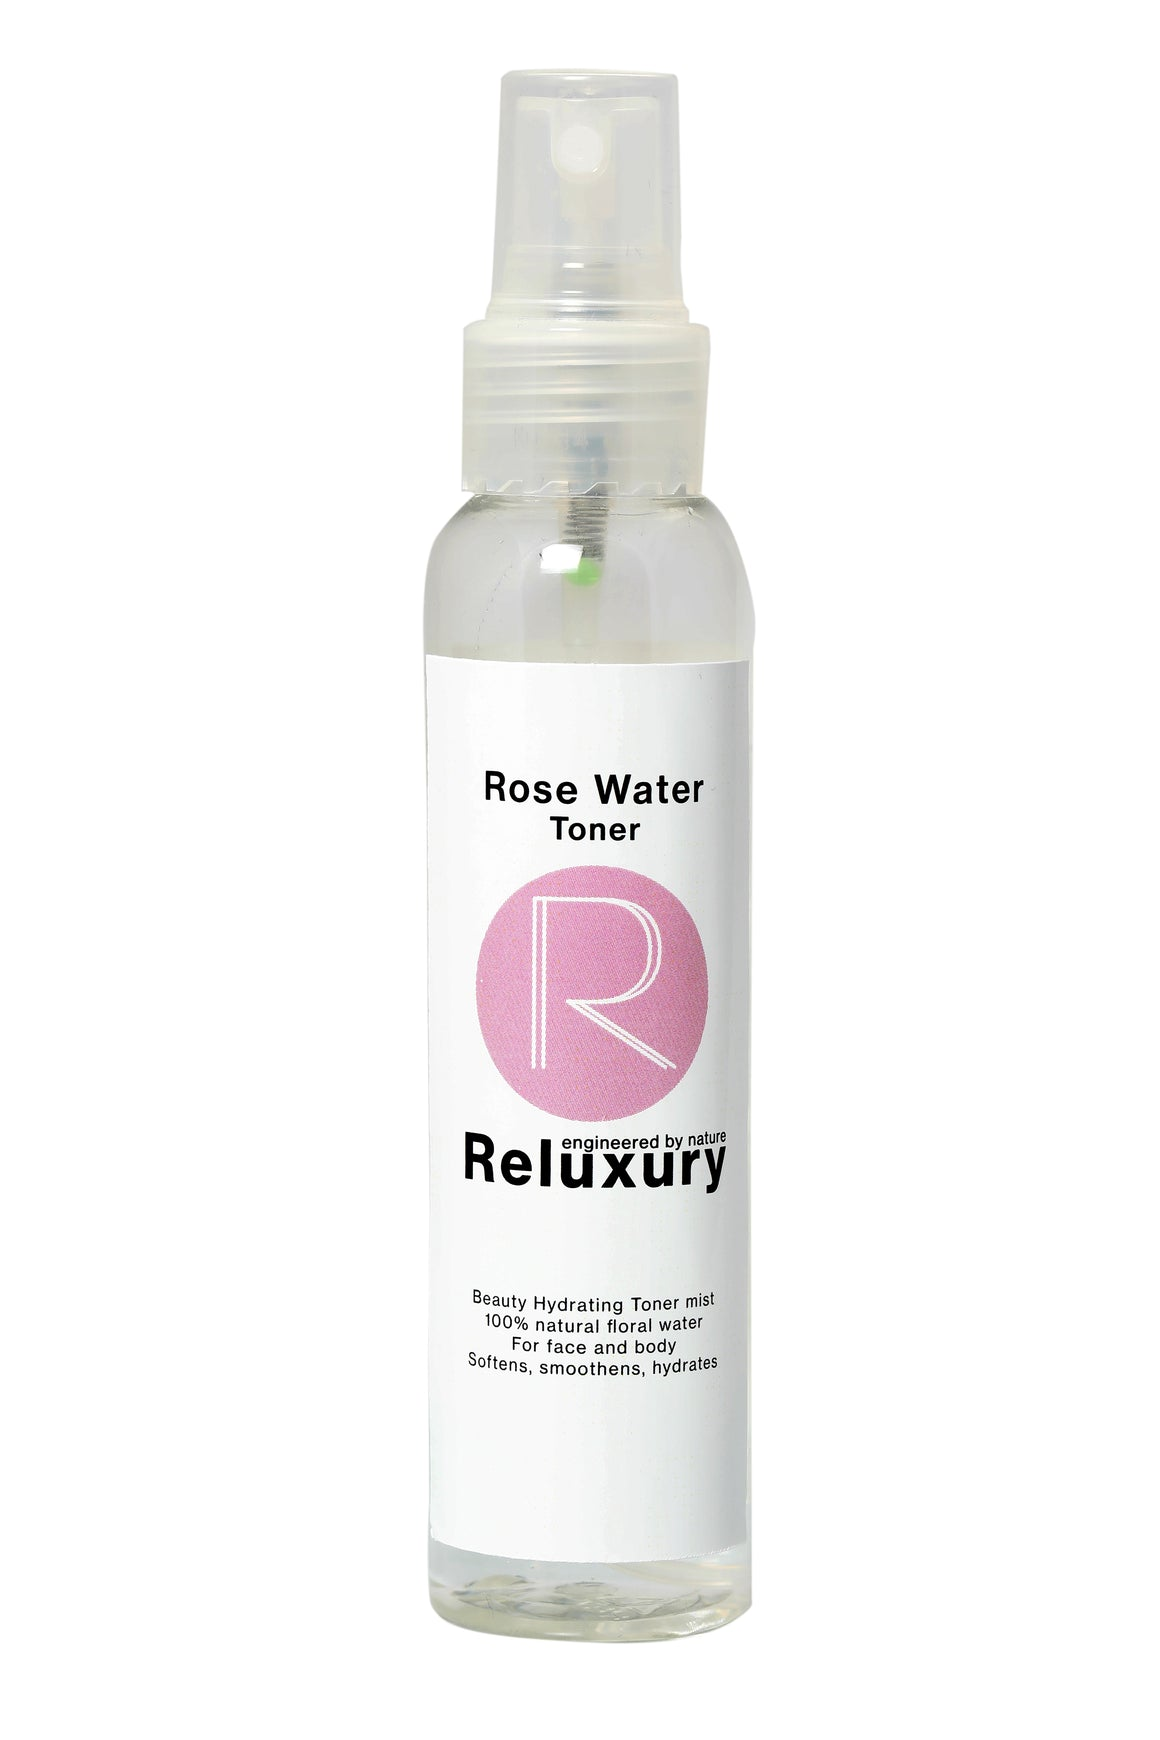 Rose Water Toner mist